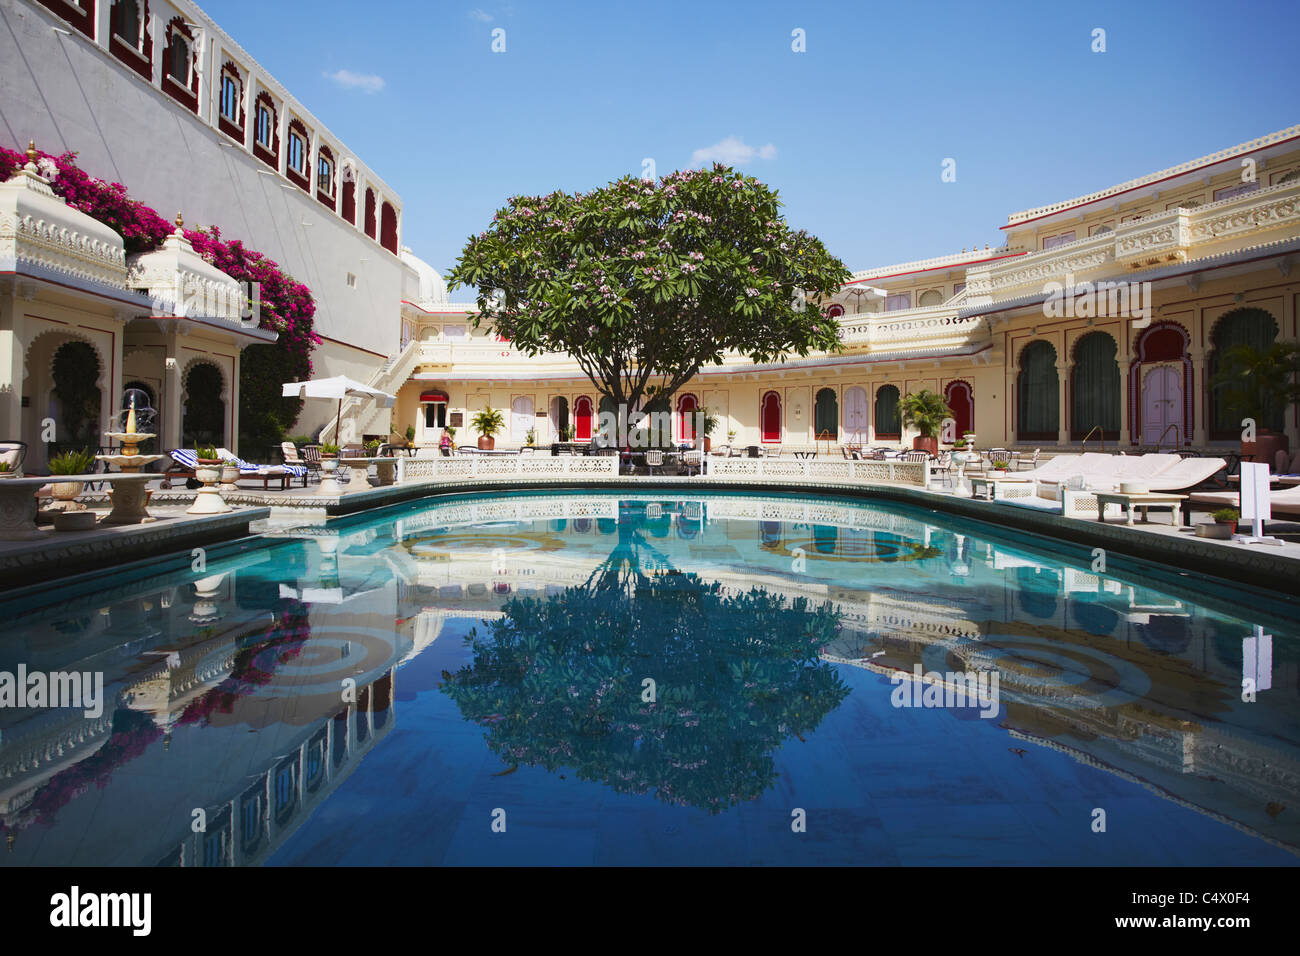 Pool at shiv niwas palace hotel udaipur rajasthan india stock photo 37450536 alamy for Hotel in udaipur with swimming pool